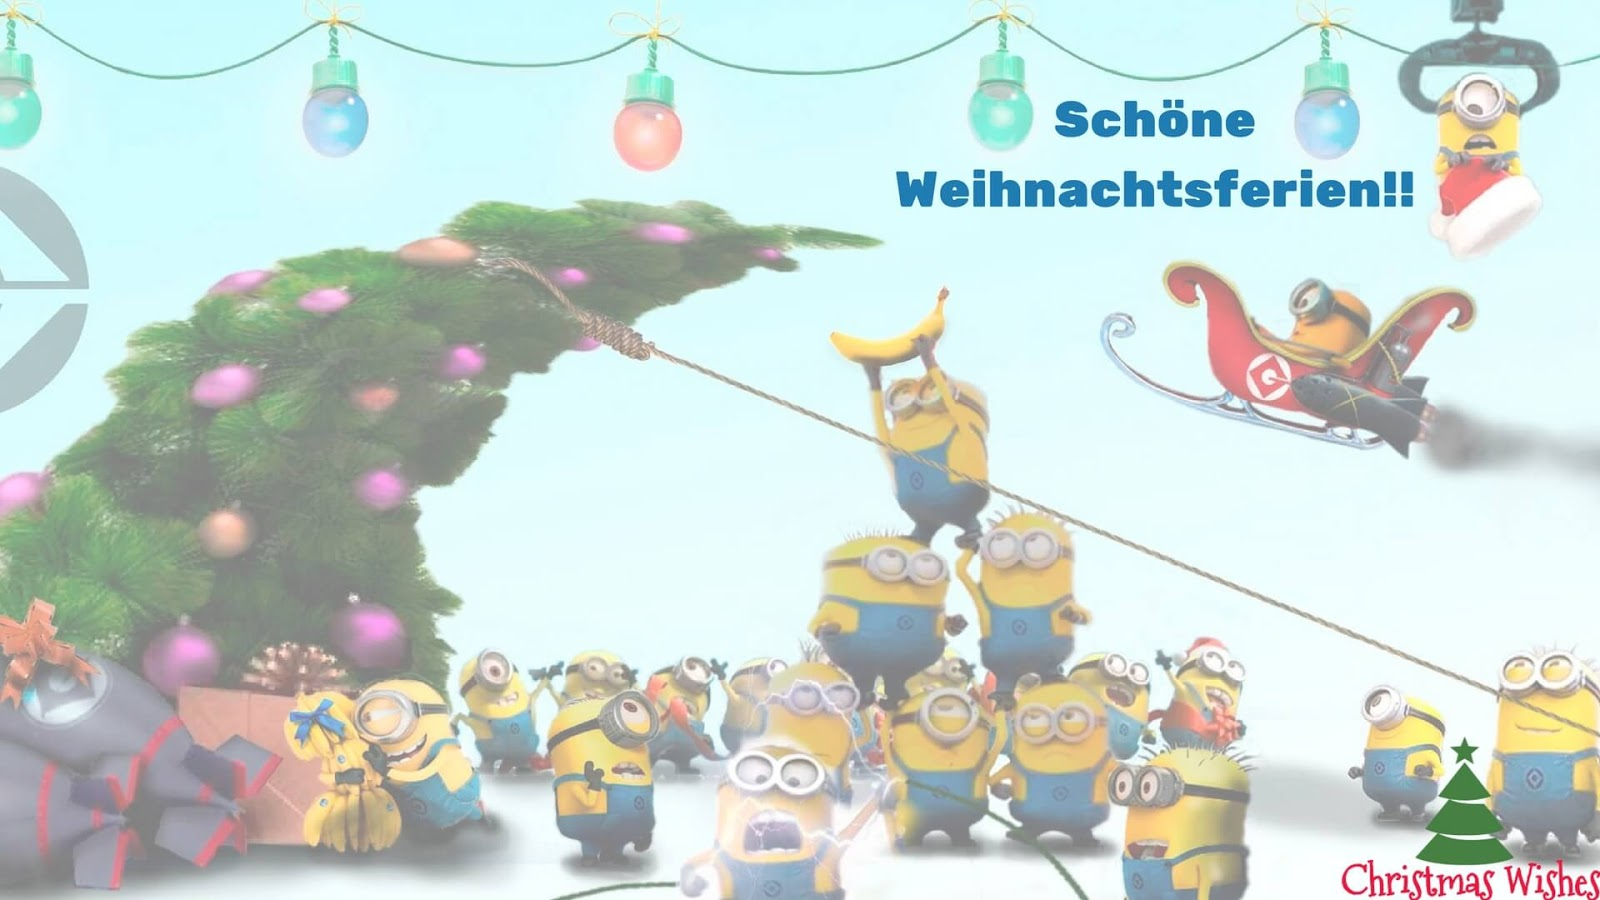 fantastisch lustige minions bilder frohe weihnachten. Black Bedroom Furniture Sets. Home Design Ideas